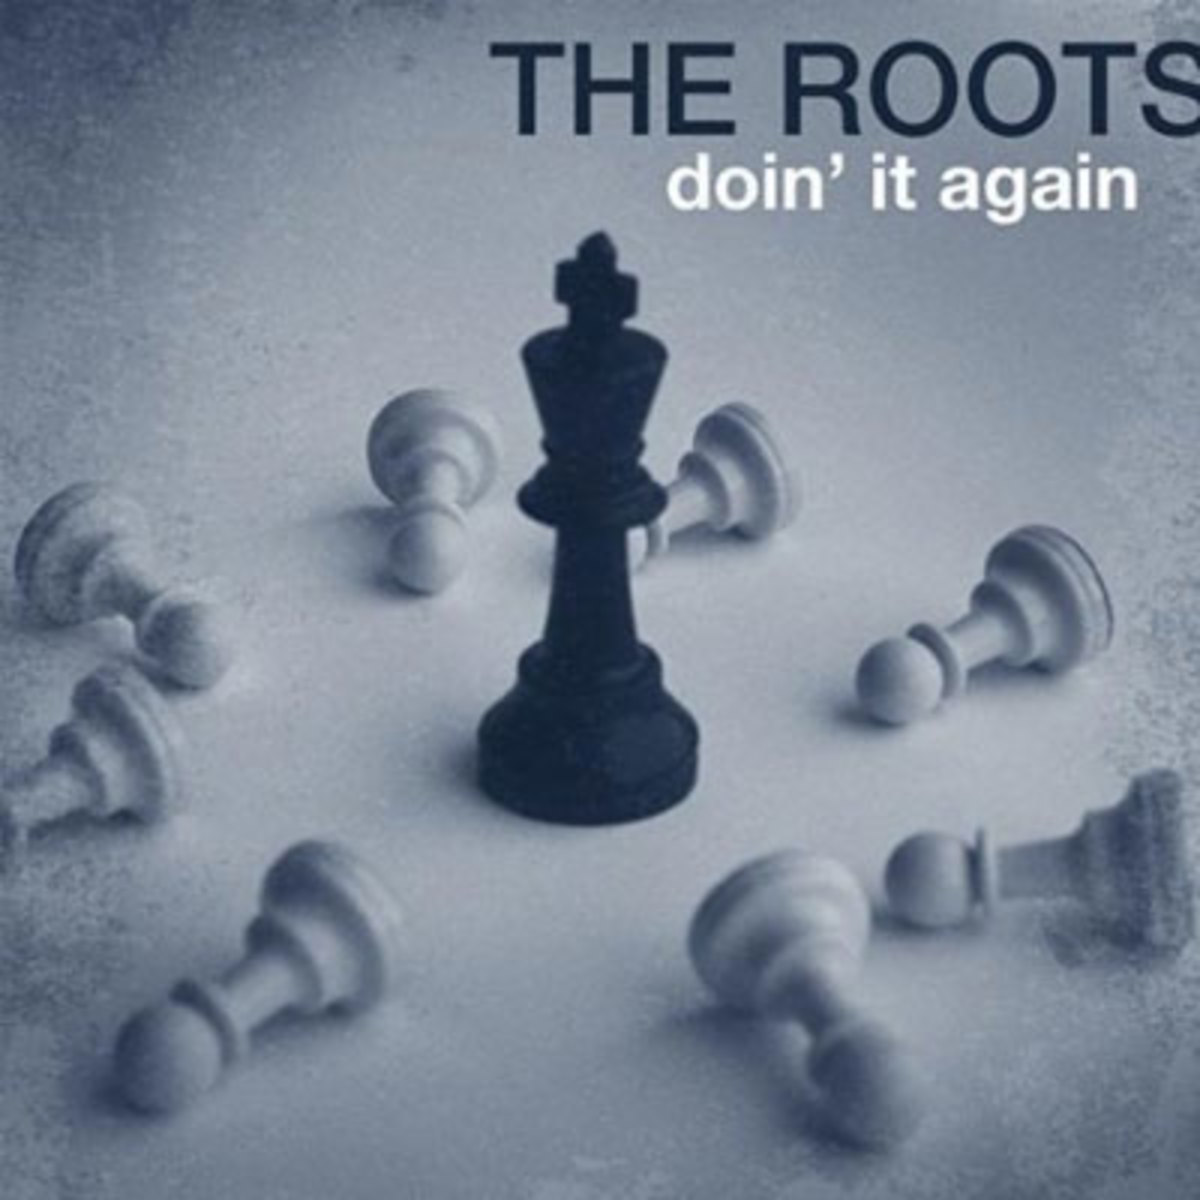 theroots-doinitagain.jpg